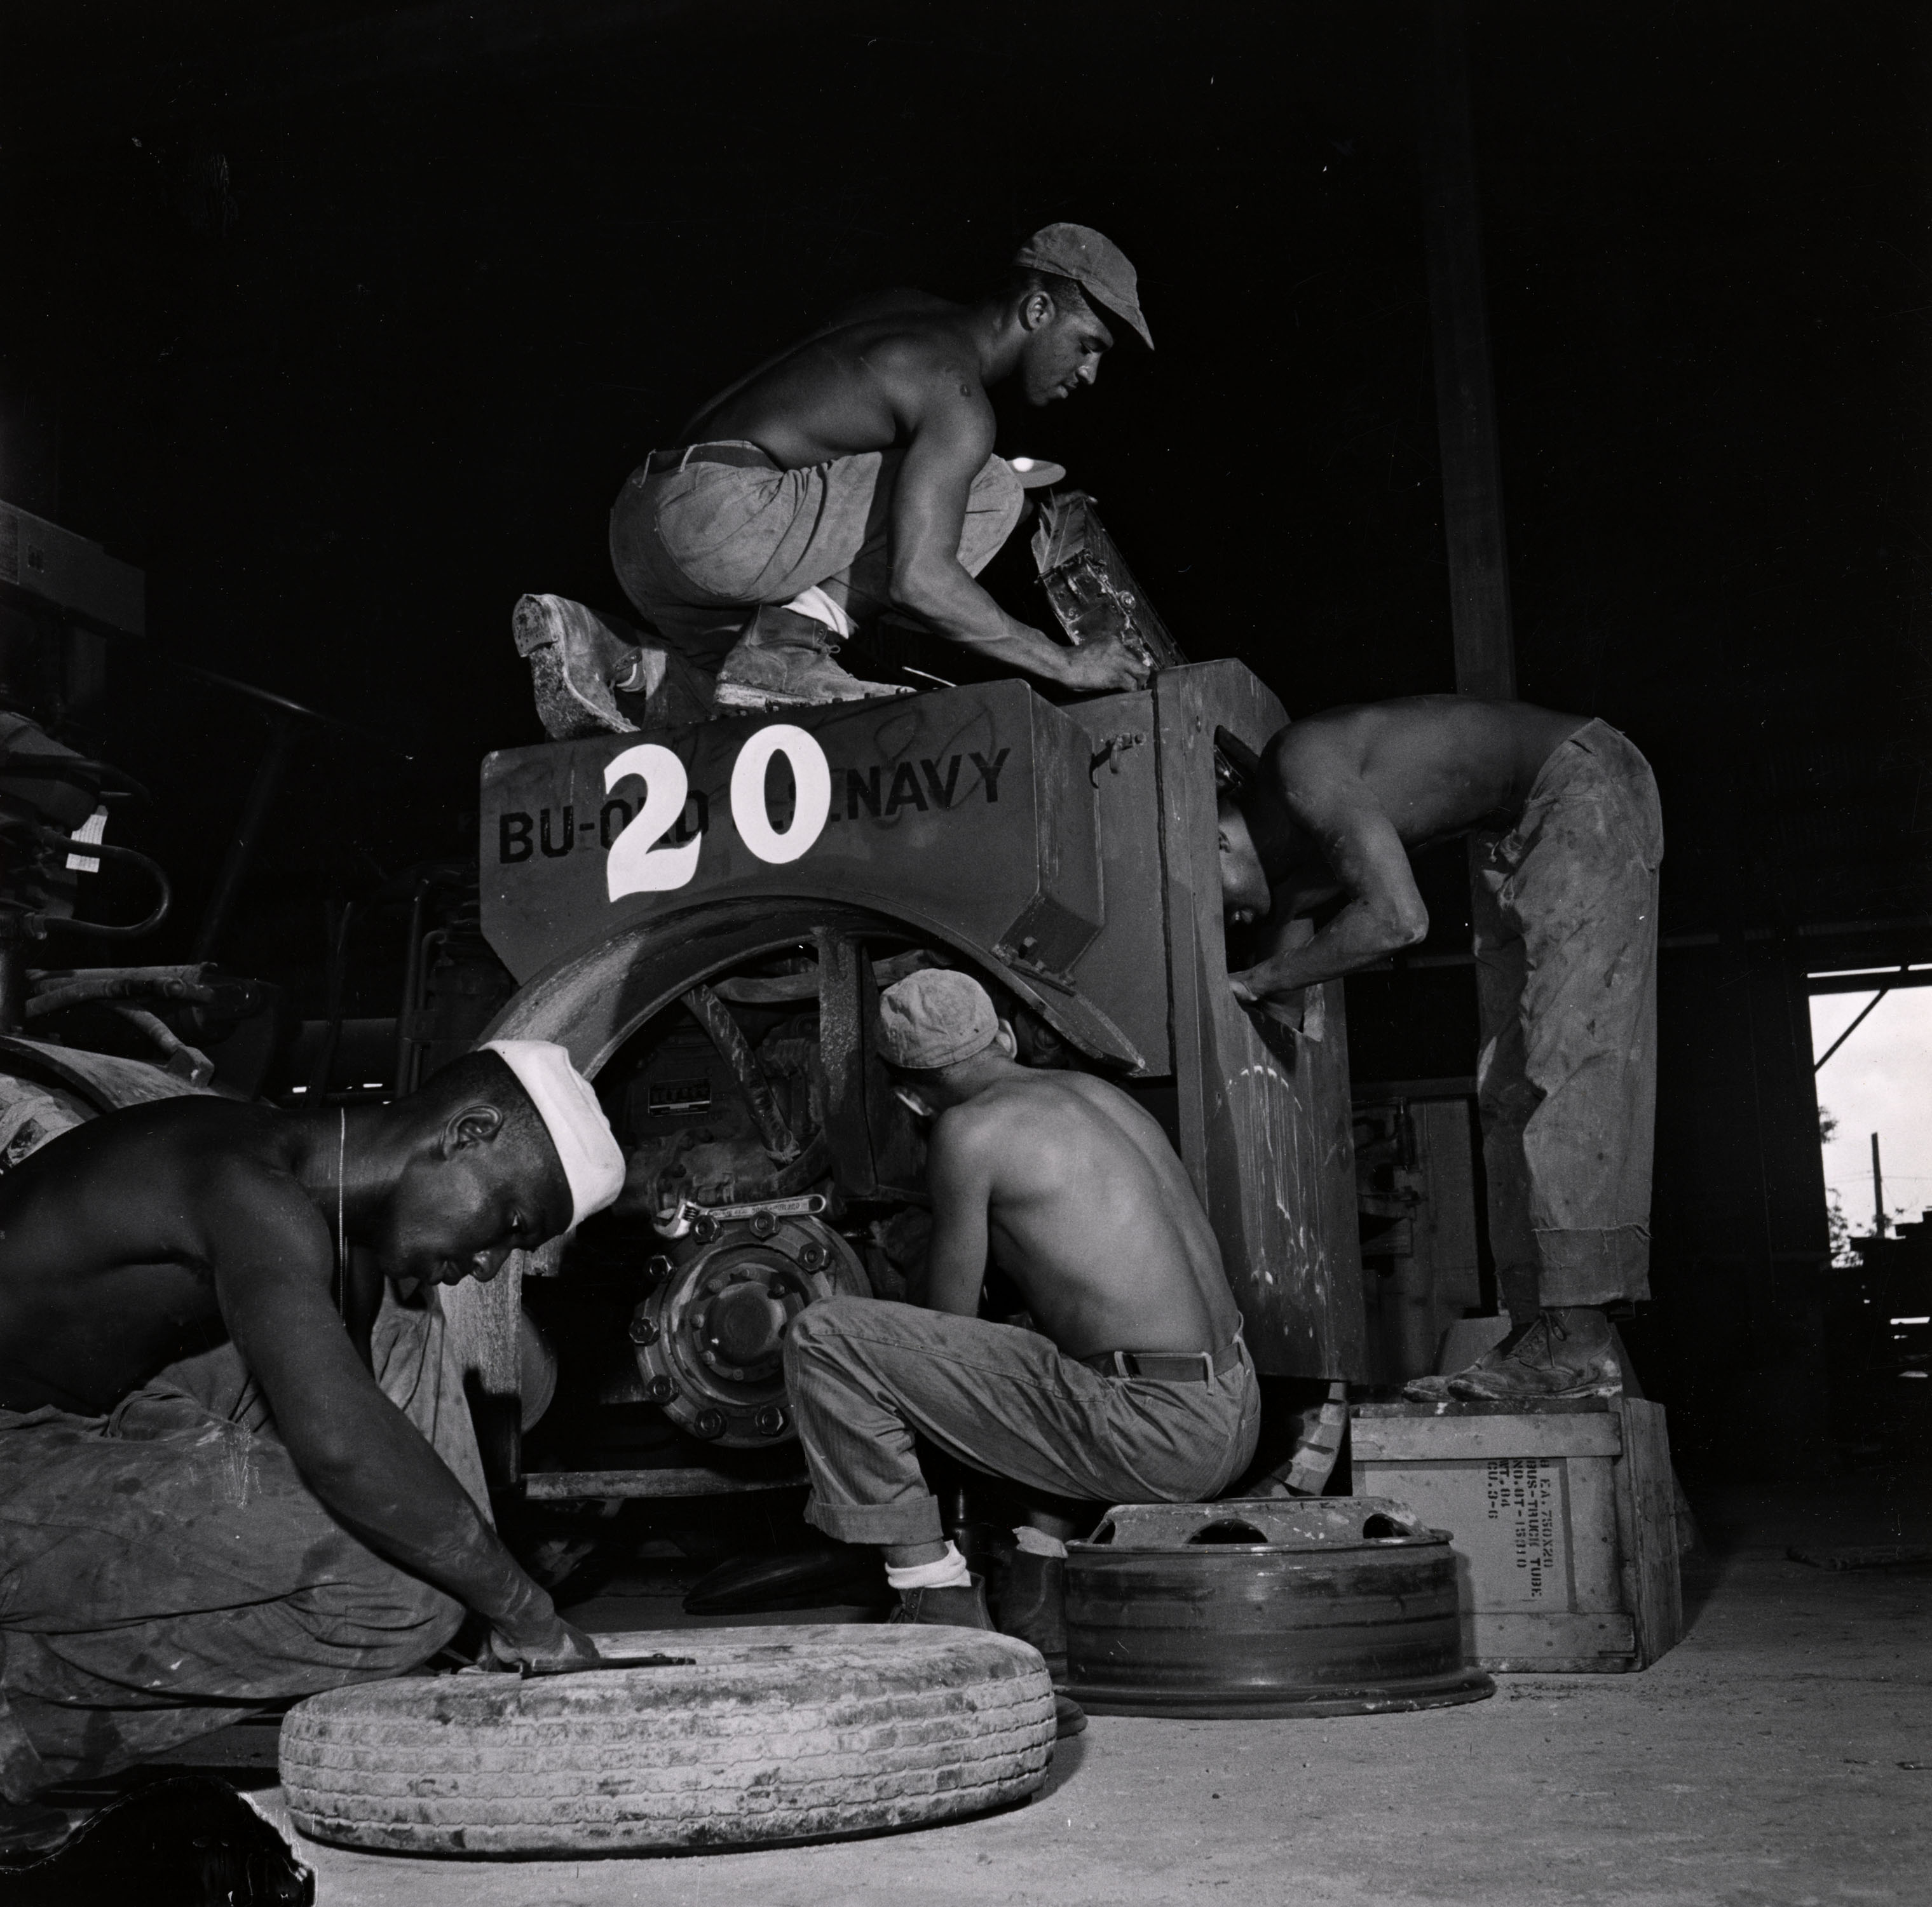 Sailors assigned to work as laborers at the US Naval Supply Depot on Guam.